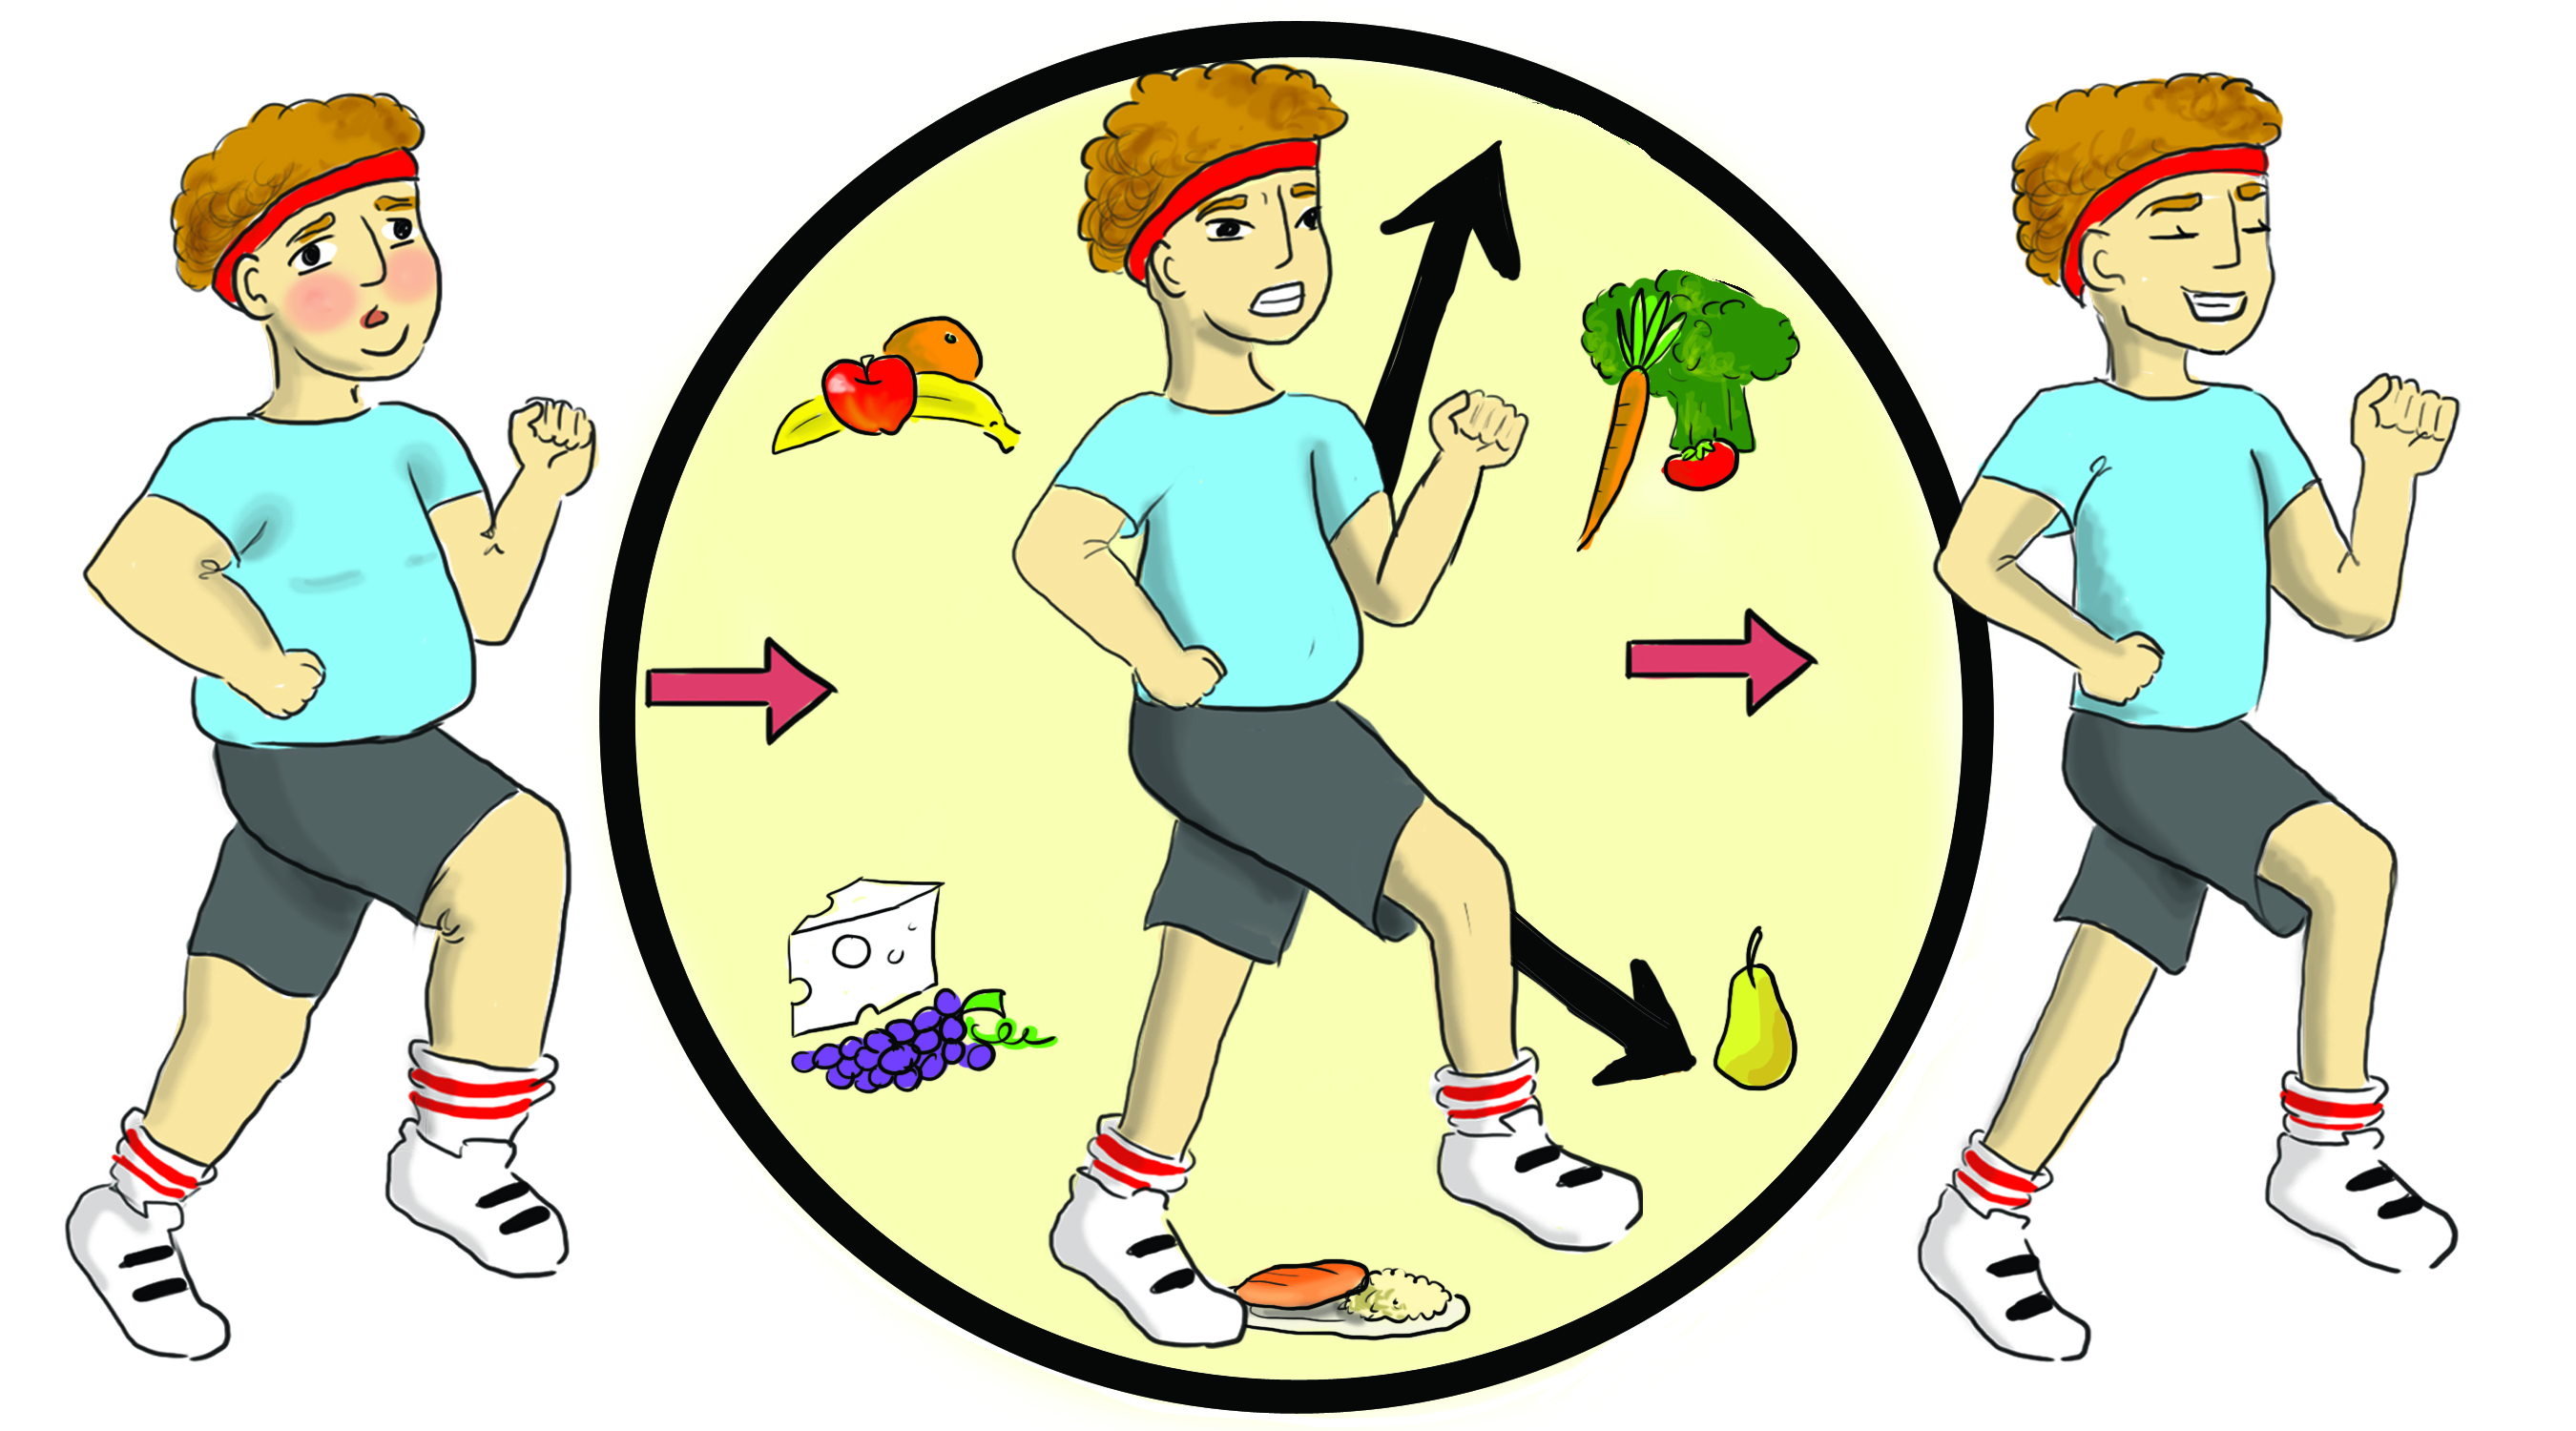 Fit and healthy clipart clipart royalty free download Keeping healthy clipart - ClipartFest clipart royalty free download